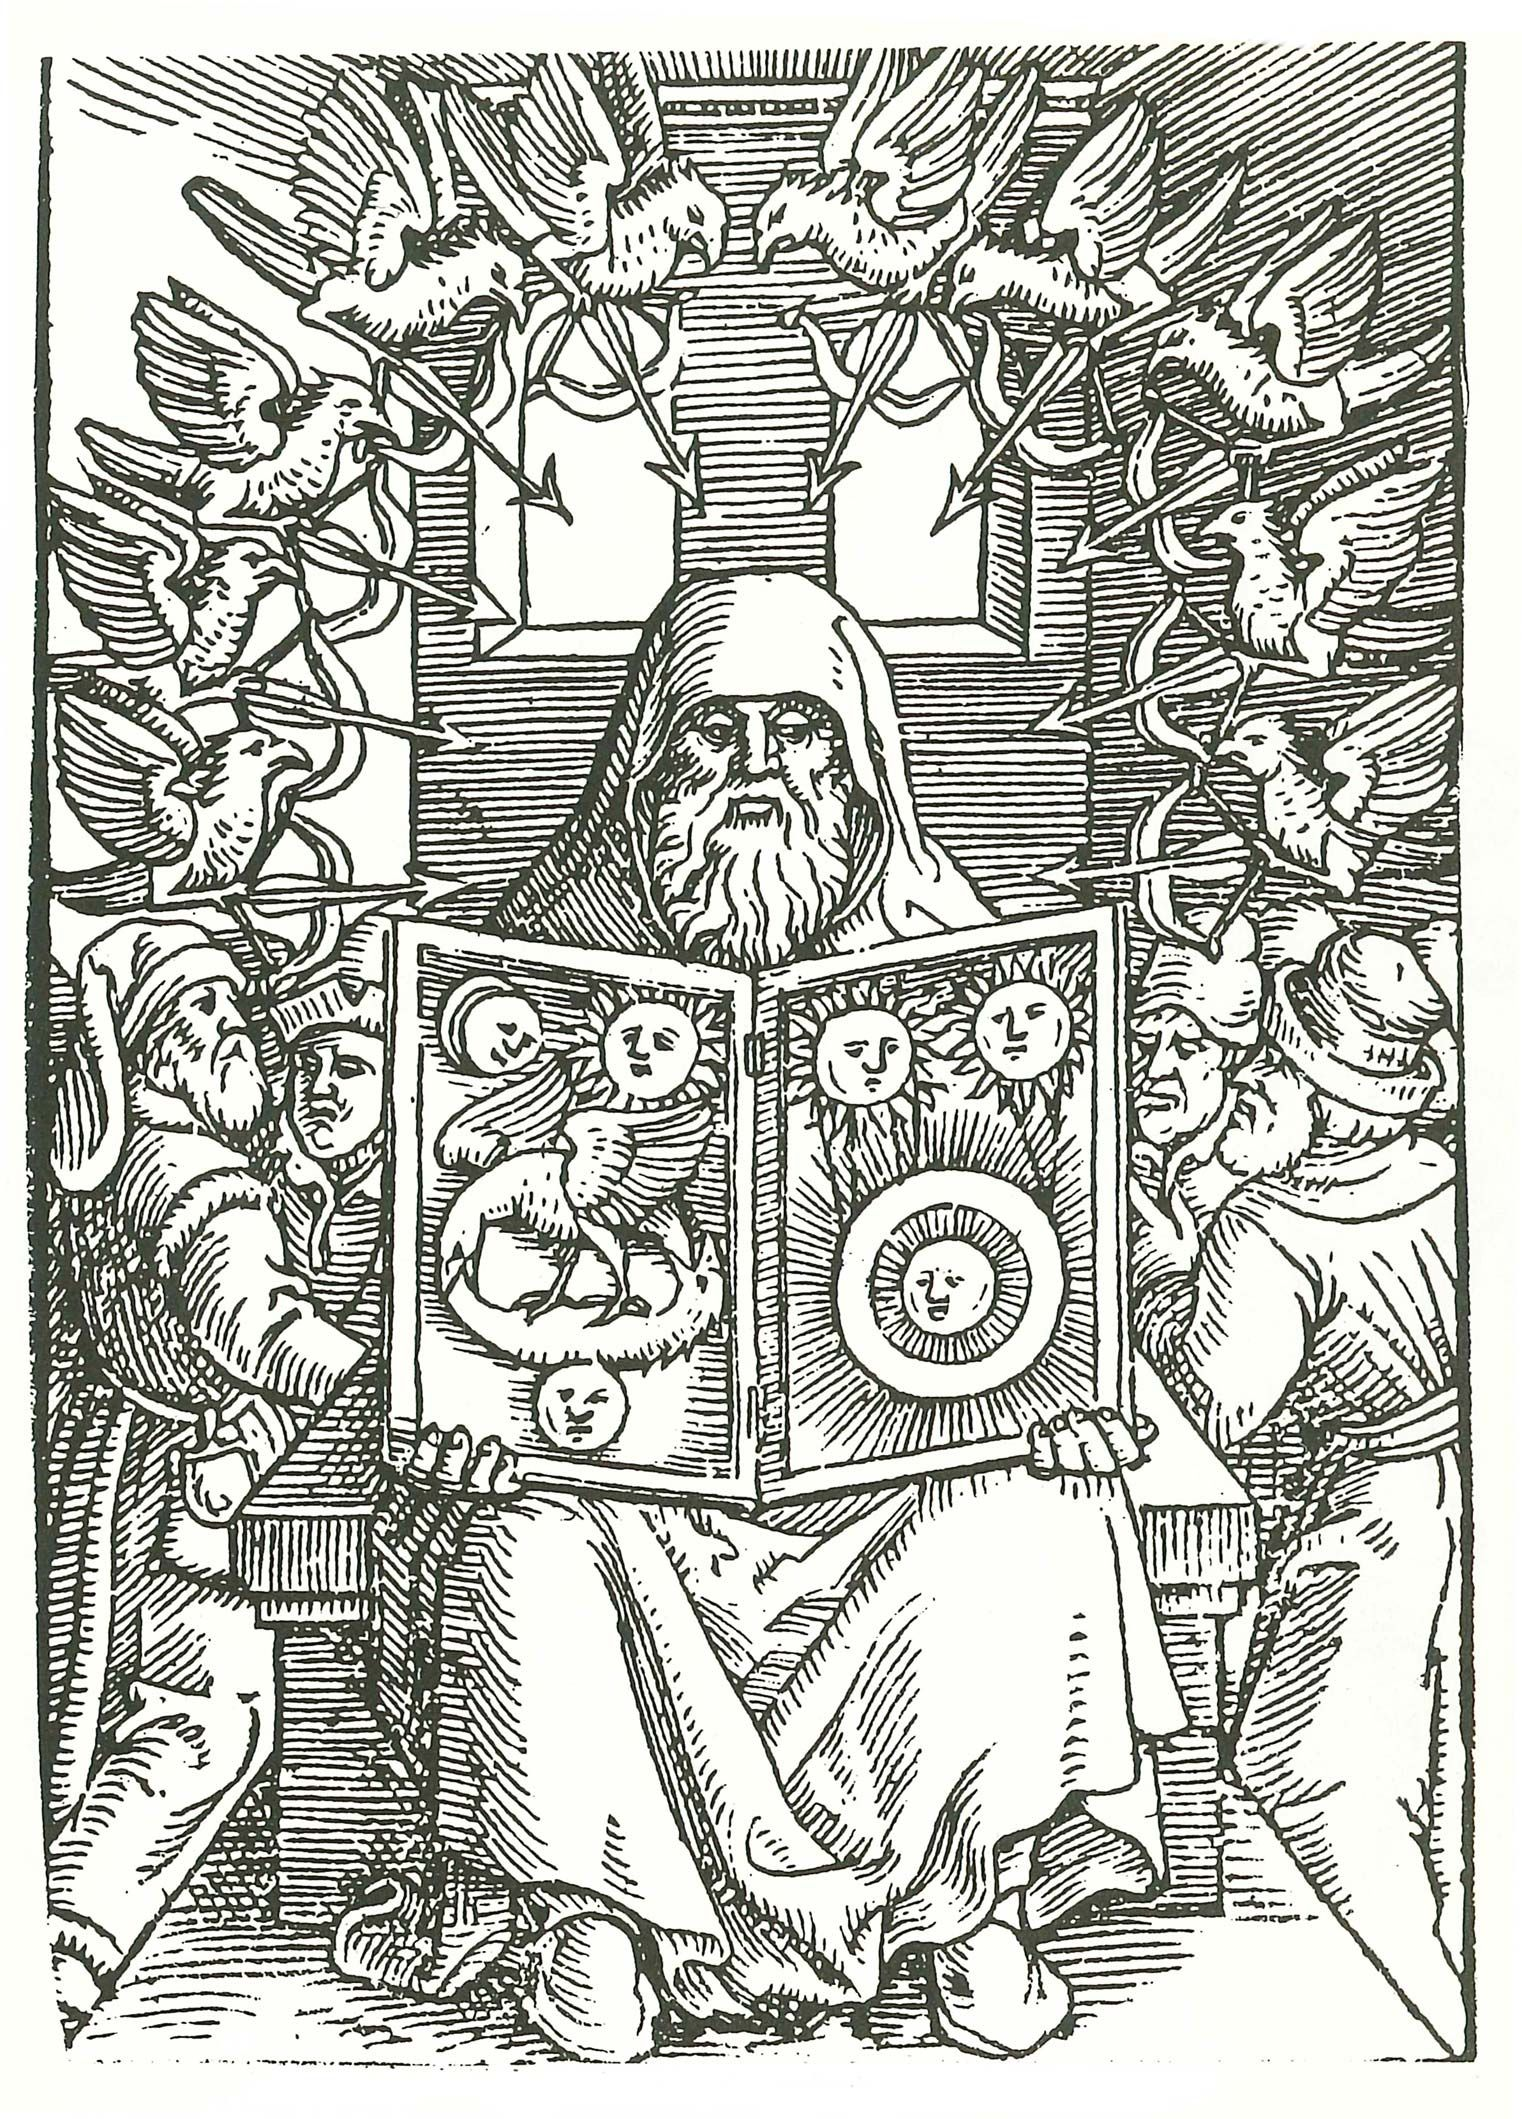 Hermes trismegistus founder of hermeticism mythology and old occult art biocorpaavc Image collections